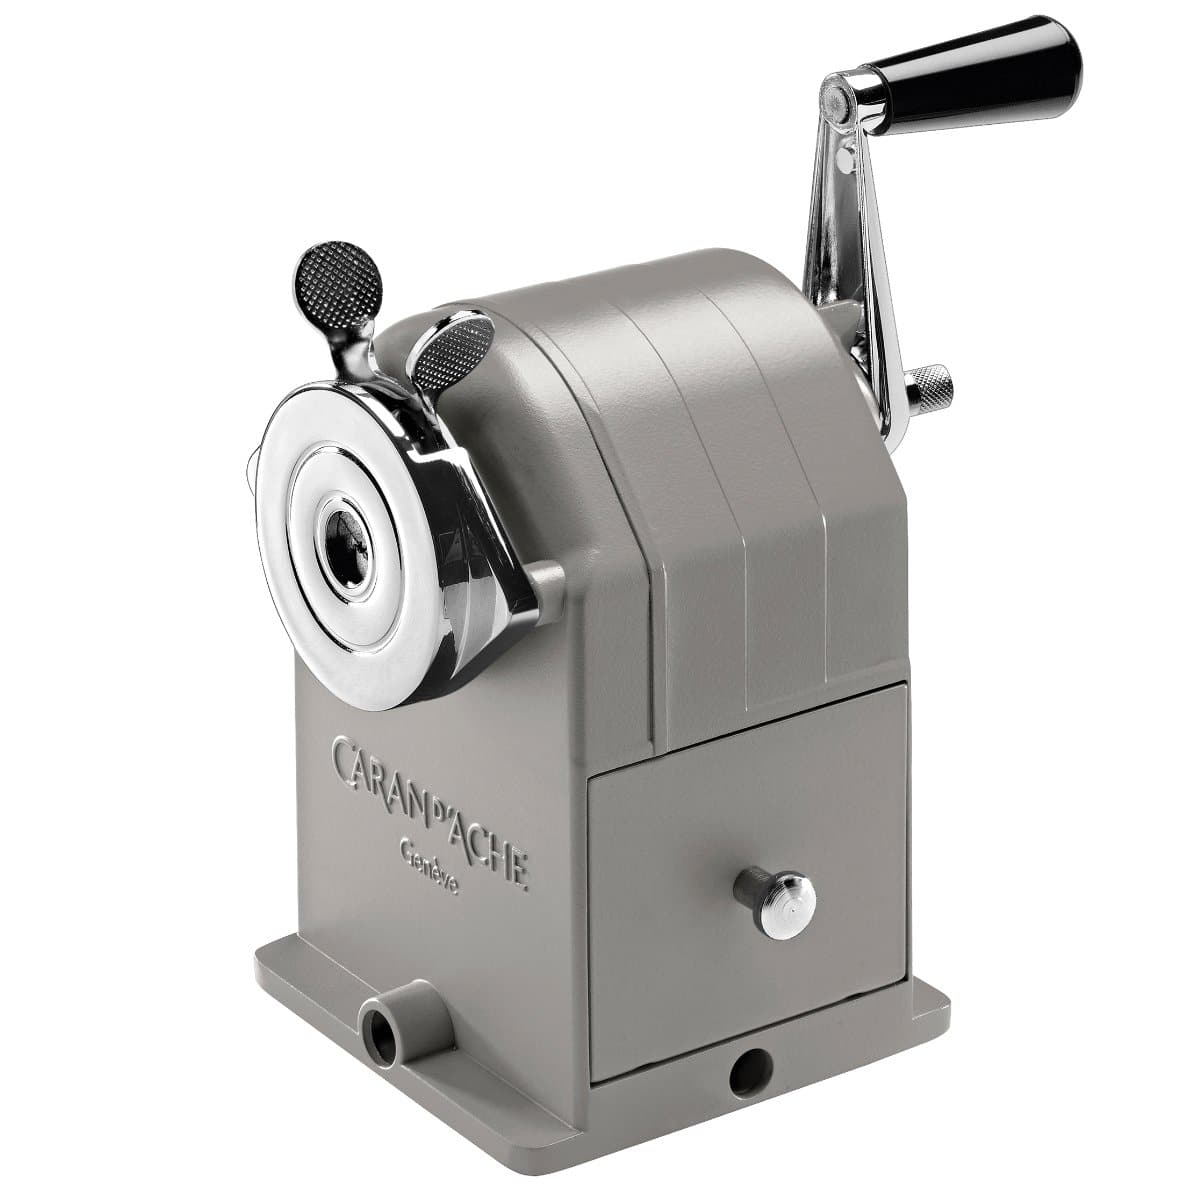 CARAN d'ACHE Metal Rotary Pencil Sharpener VINTAGE, Grey